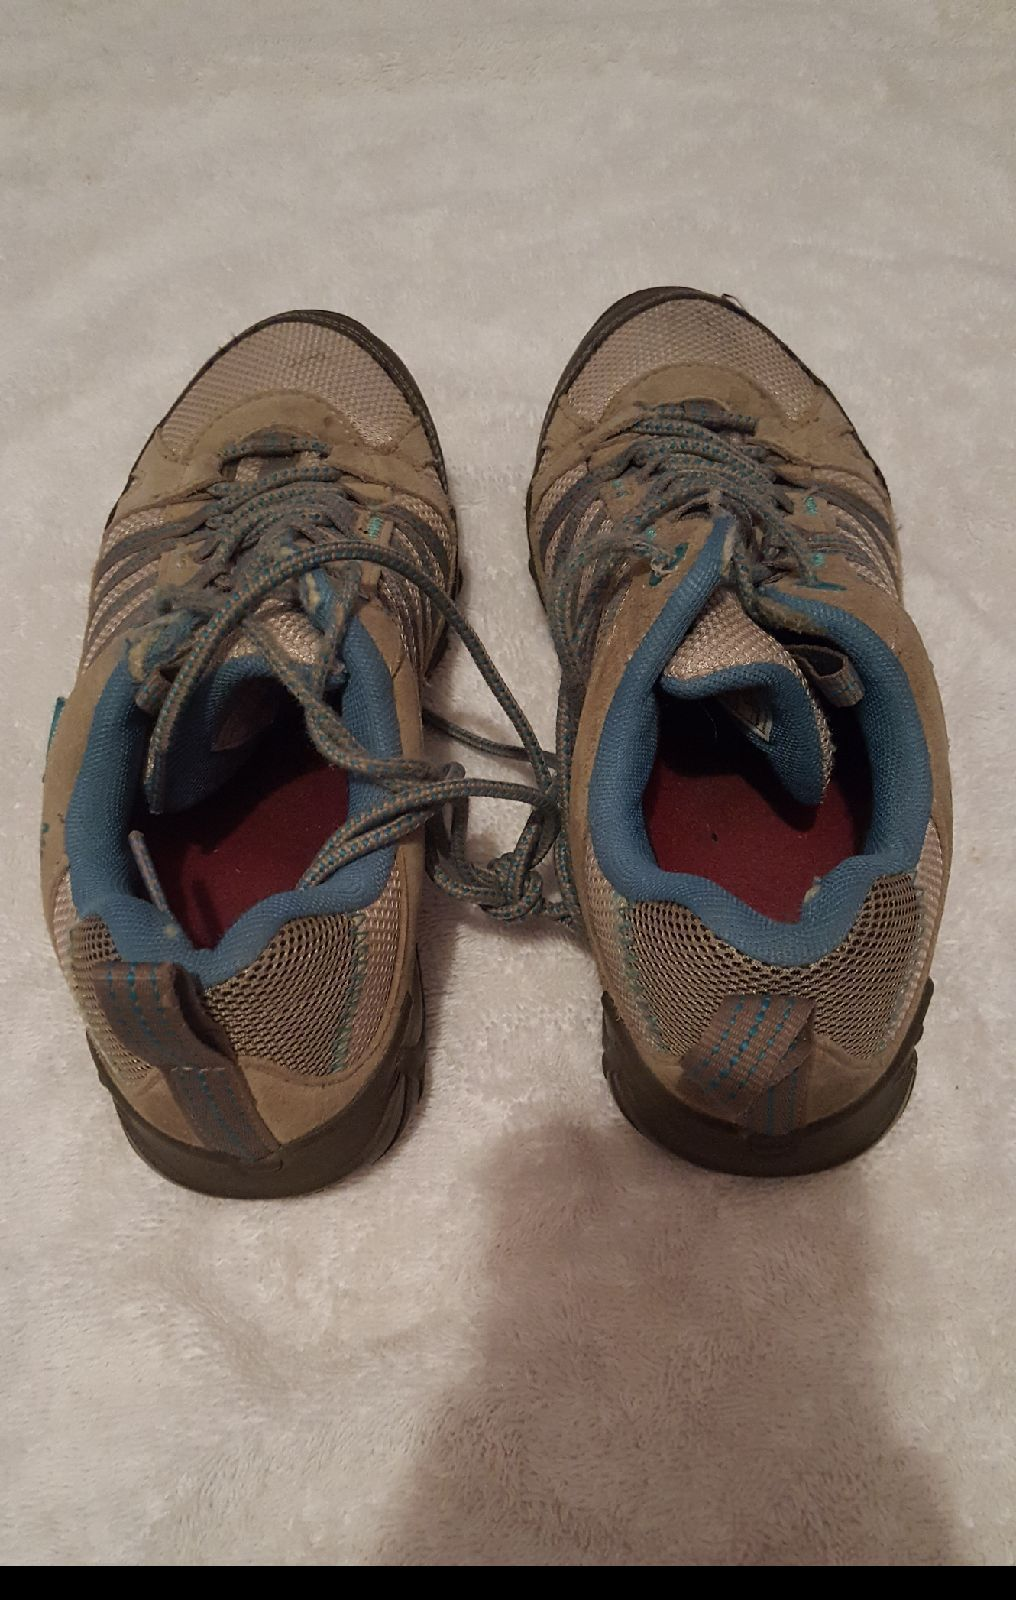 Womens Merrell Air Cushion Waterproof Hiking Shoes\Boots, Size 7.5